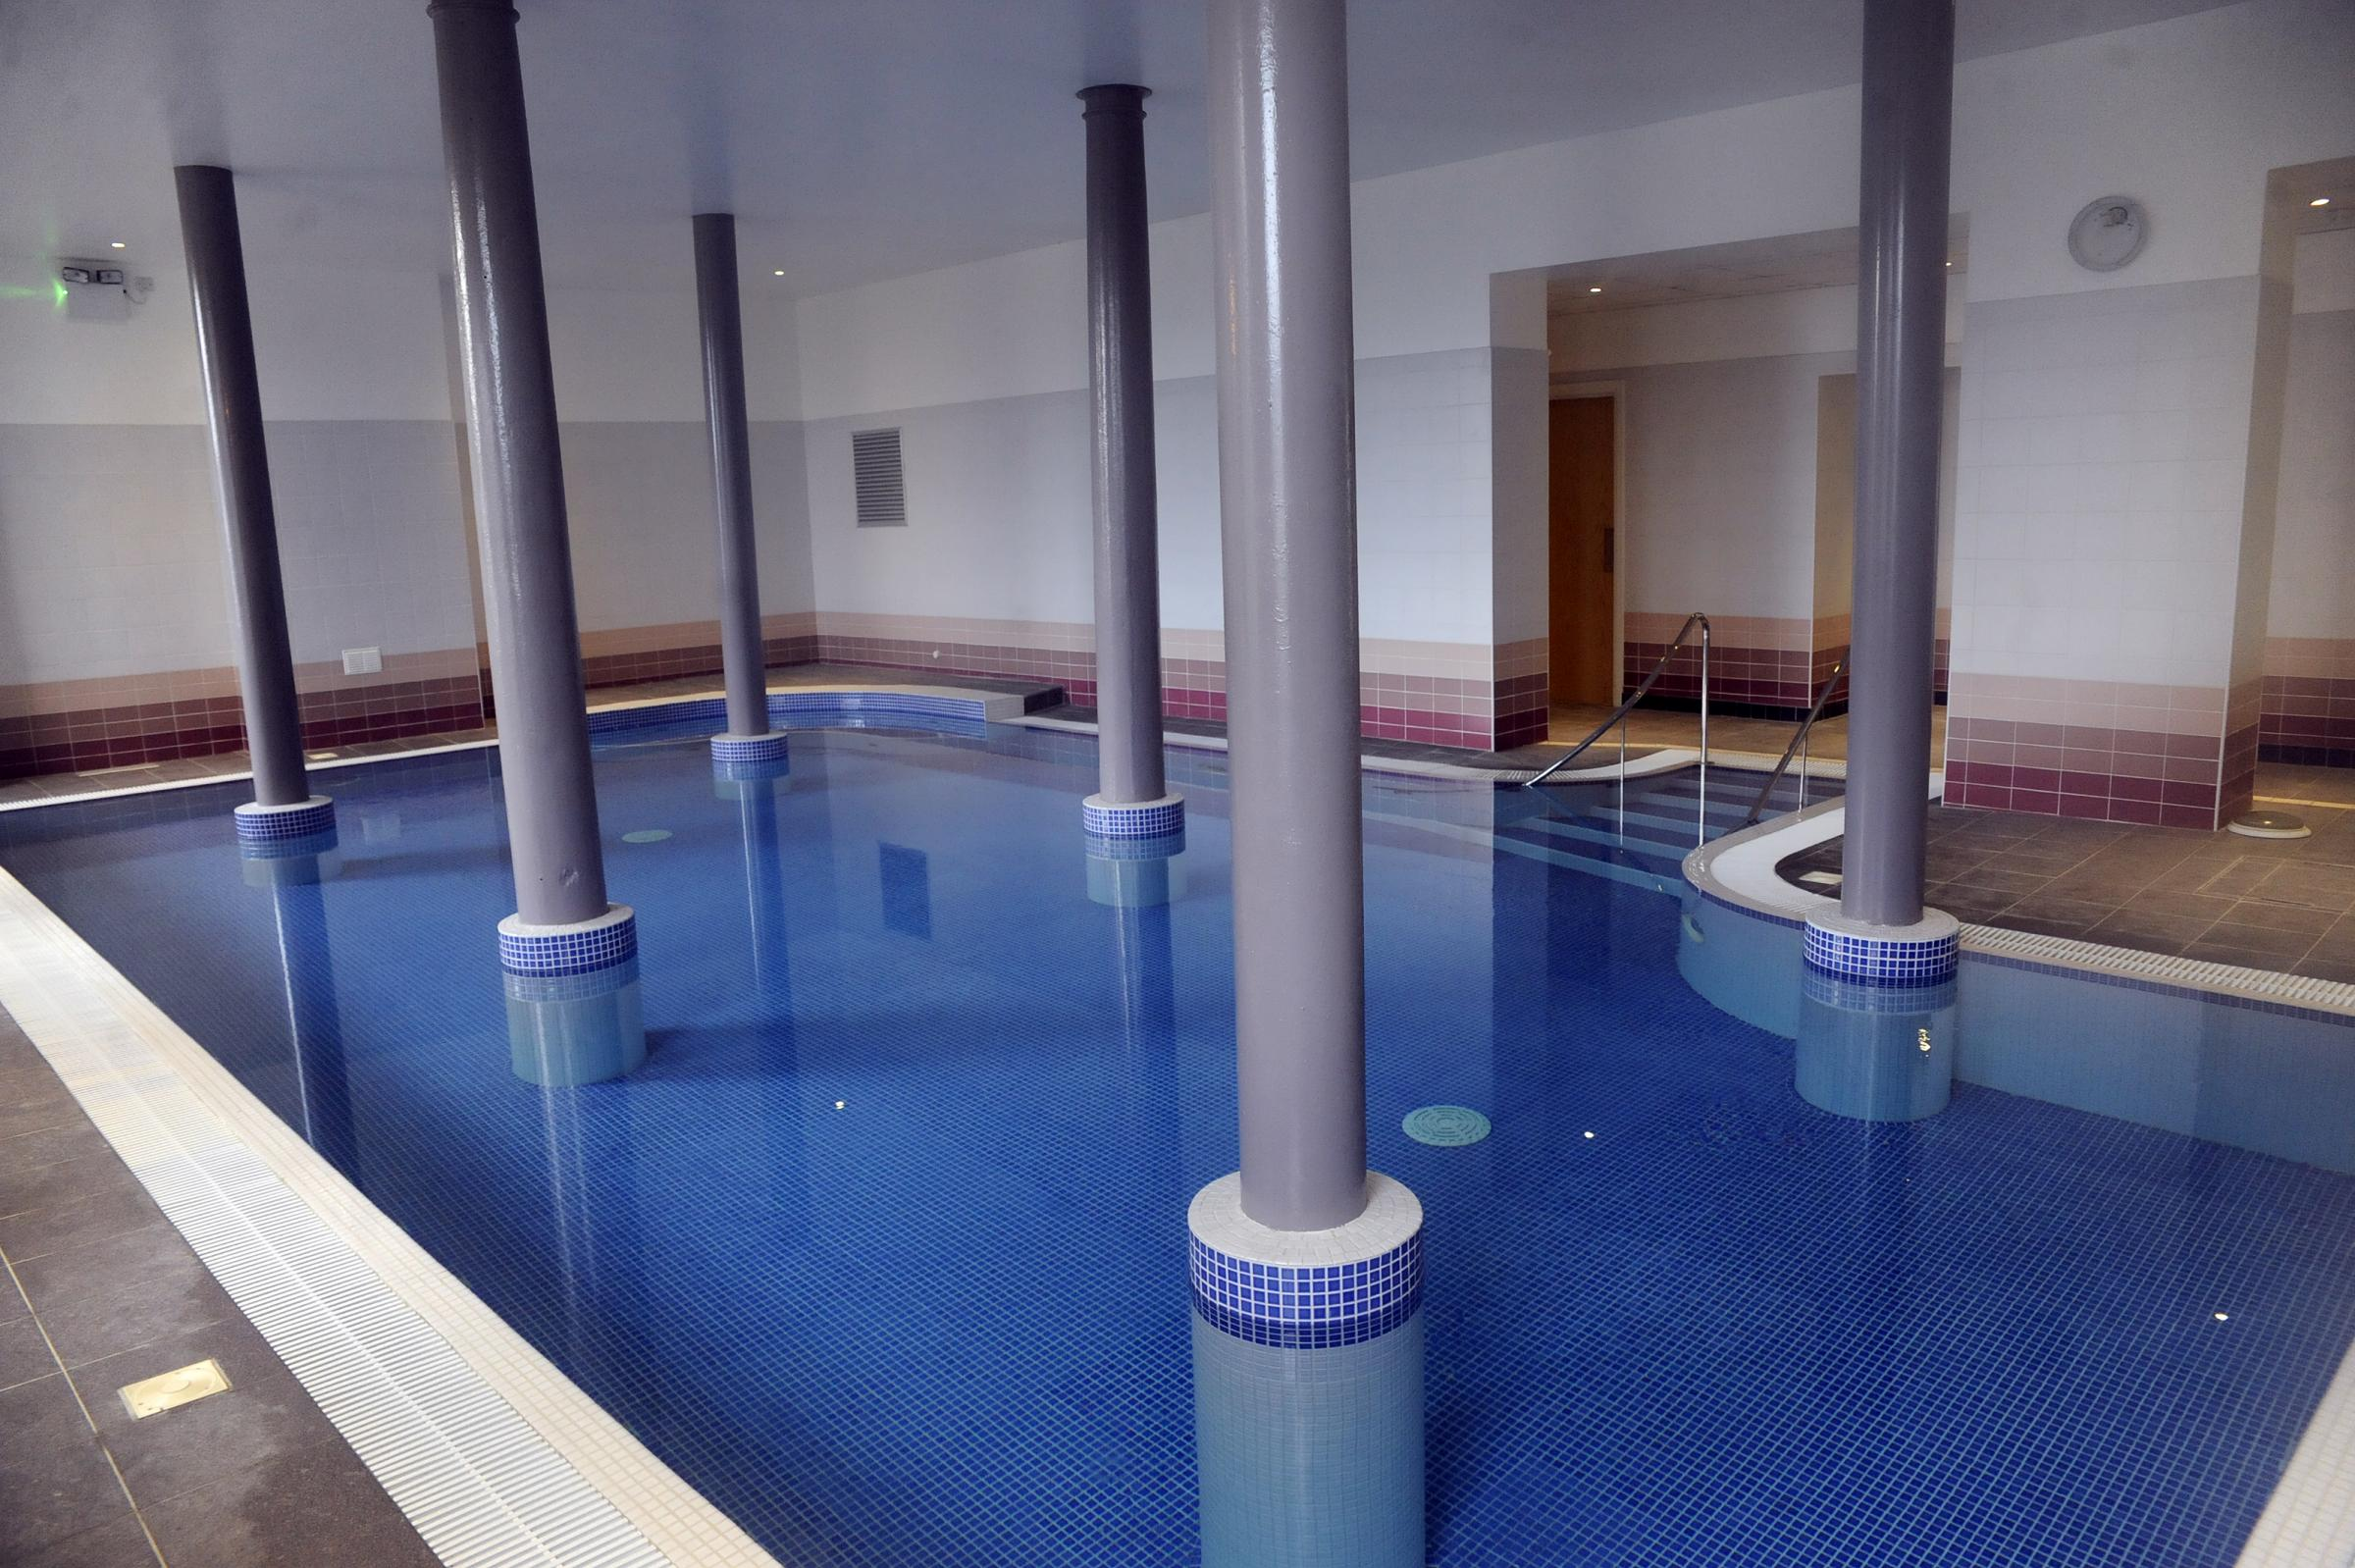 One of the pools in the spa